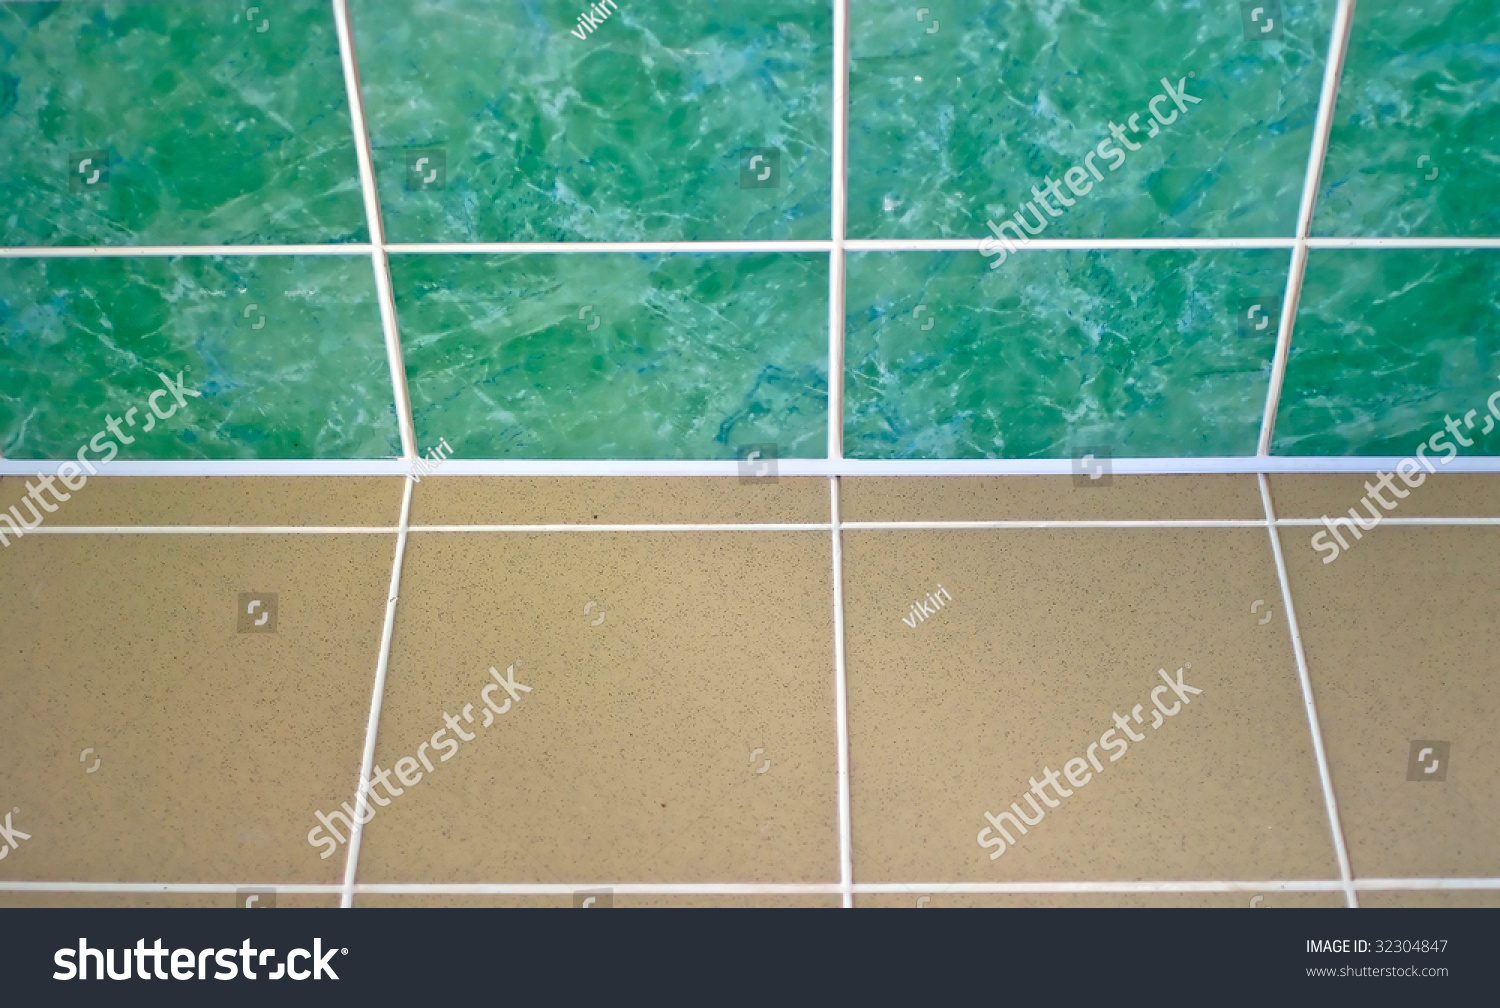 Ceramic Tile Floor Brown Green Color Stock Photo (Edit Now) 32304847 ...